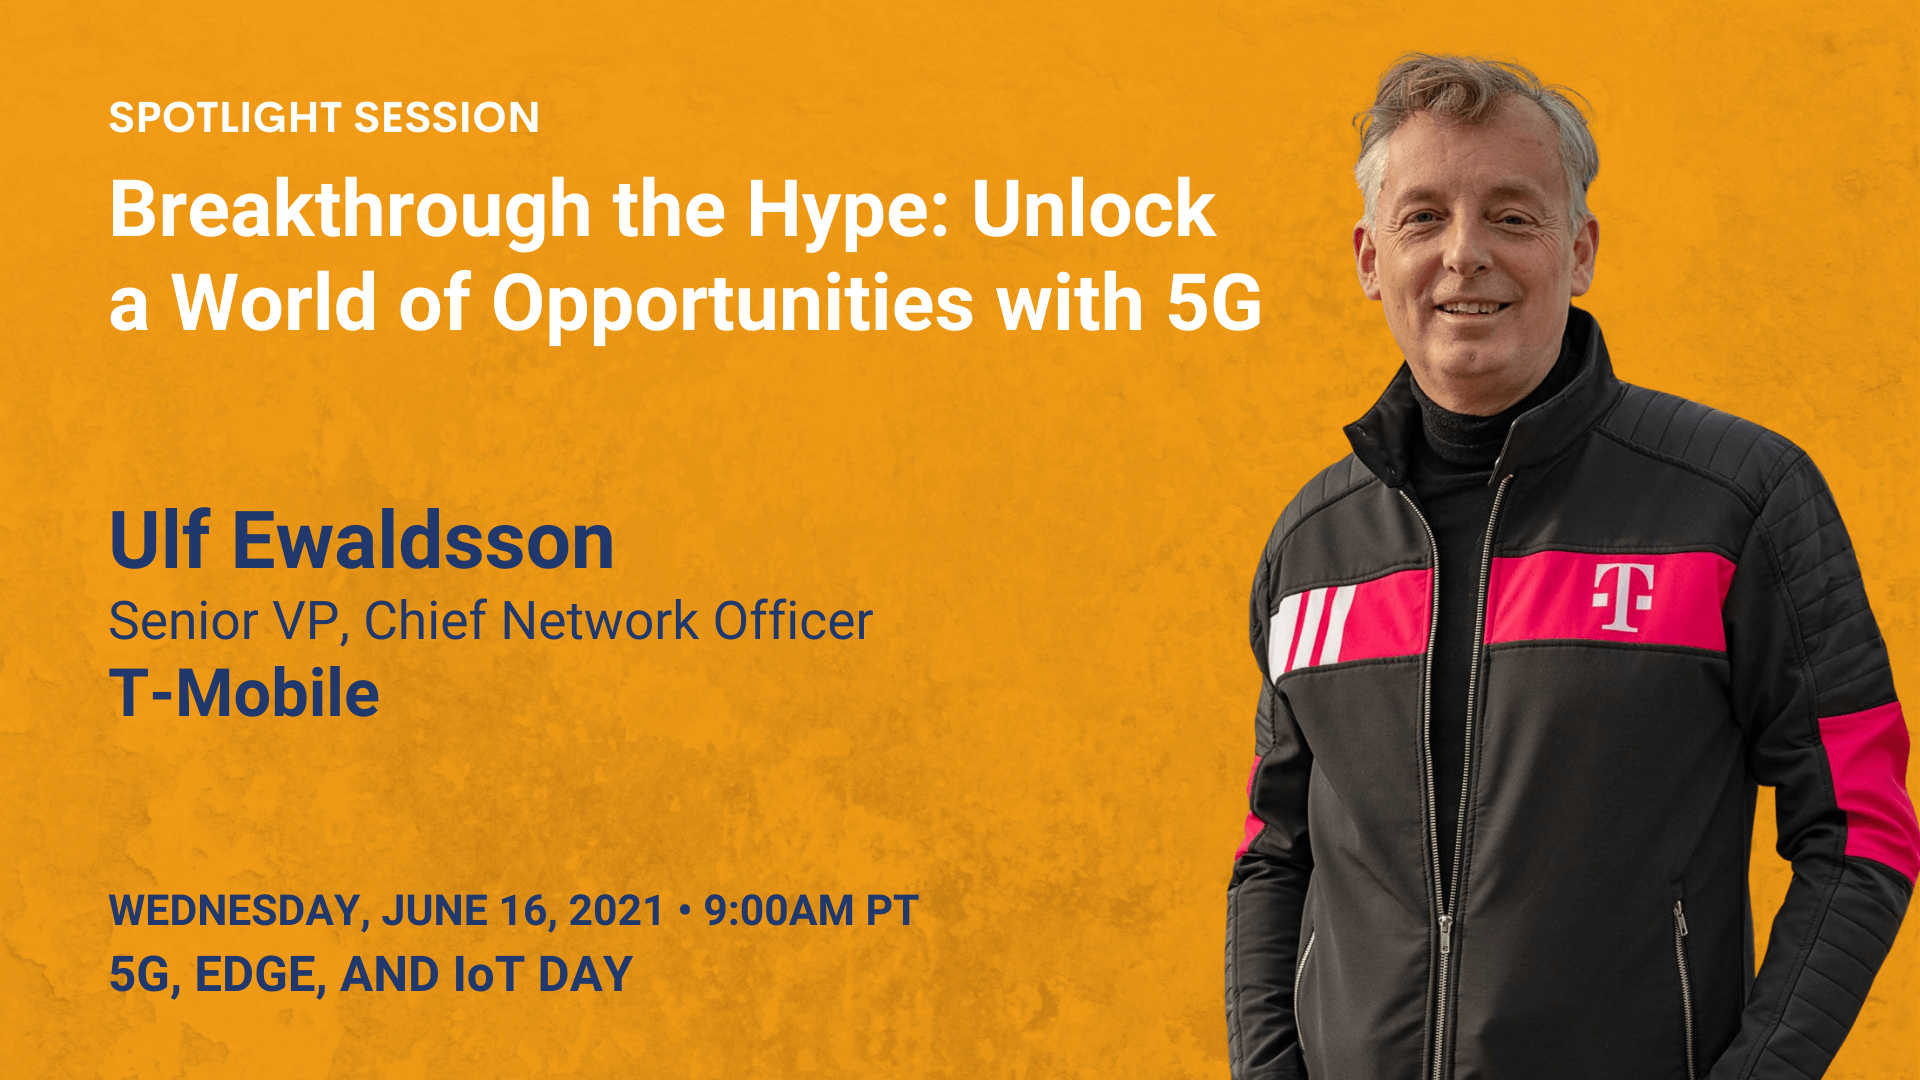 Breakthrough the Hype: Unlock a World of Opportunities with 5G (Ulf Ewaldsson)